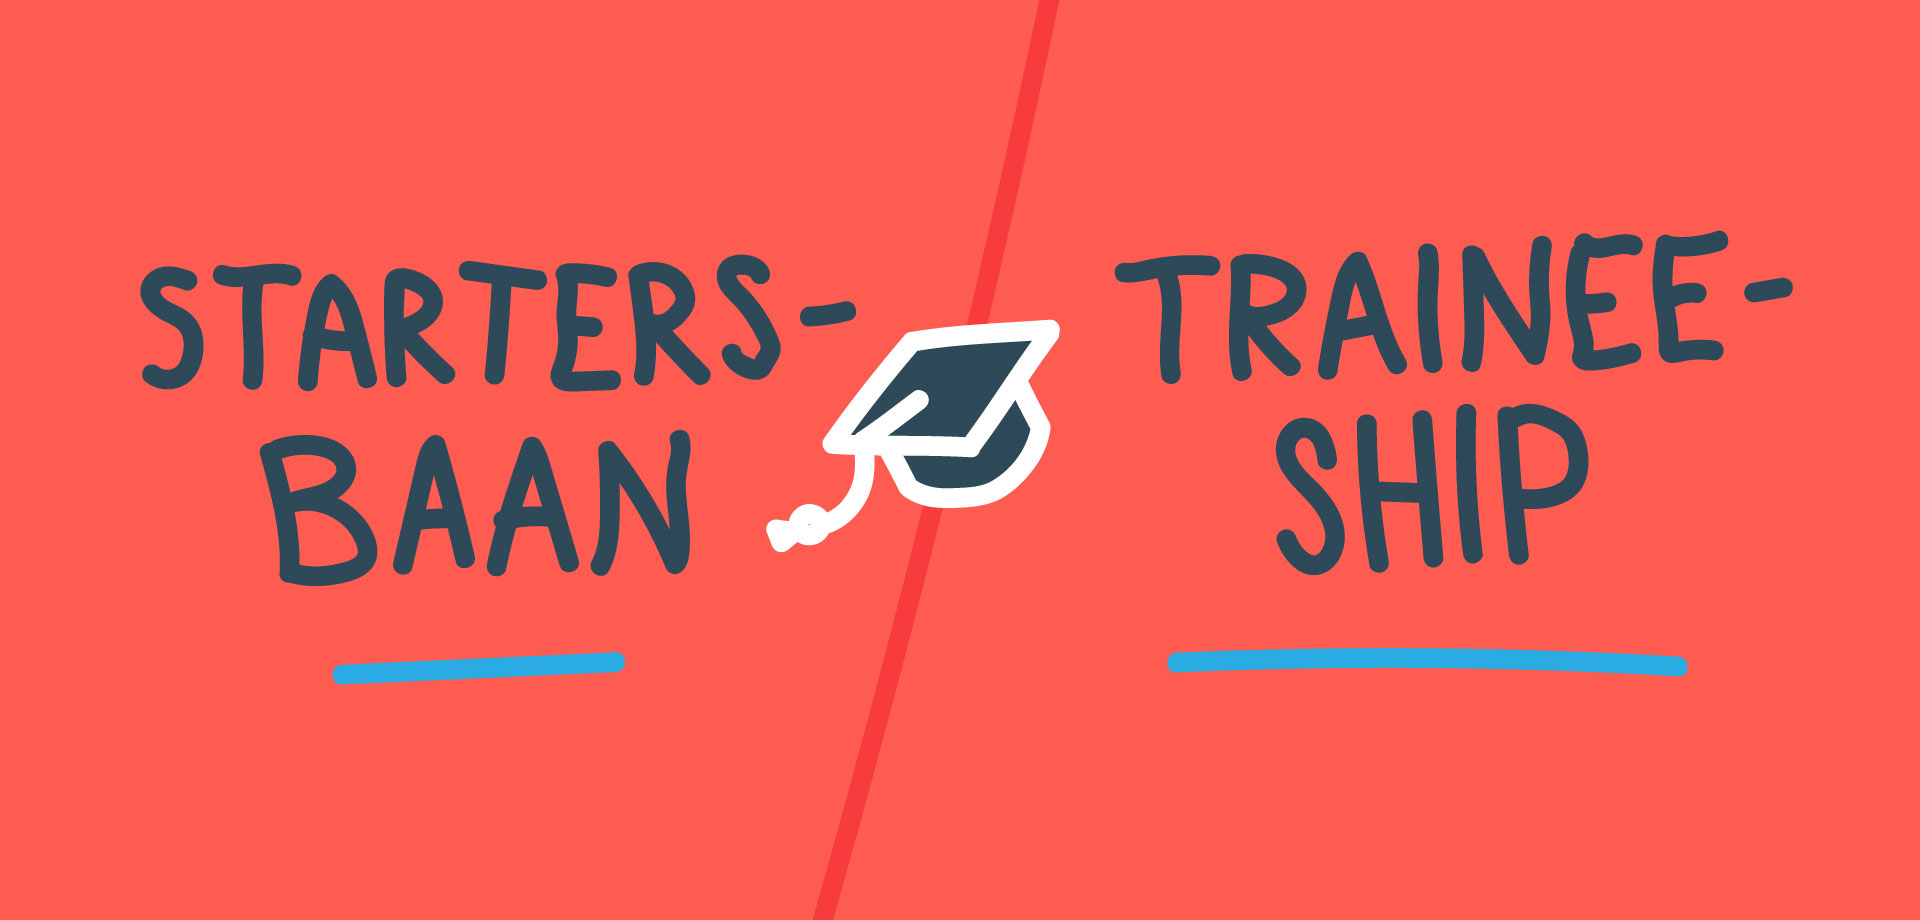 Startersbaan vs traineeship animation Magnet.me Guide